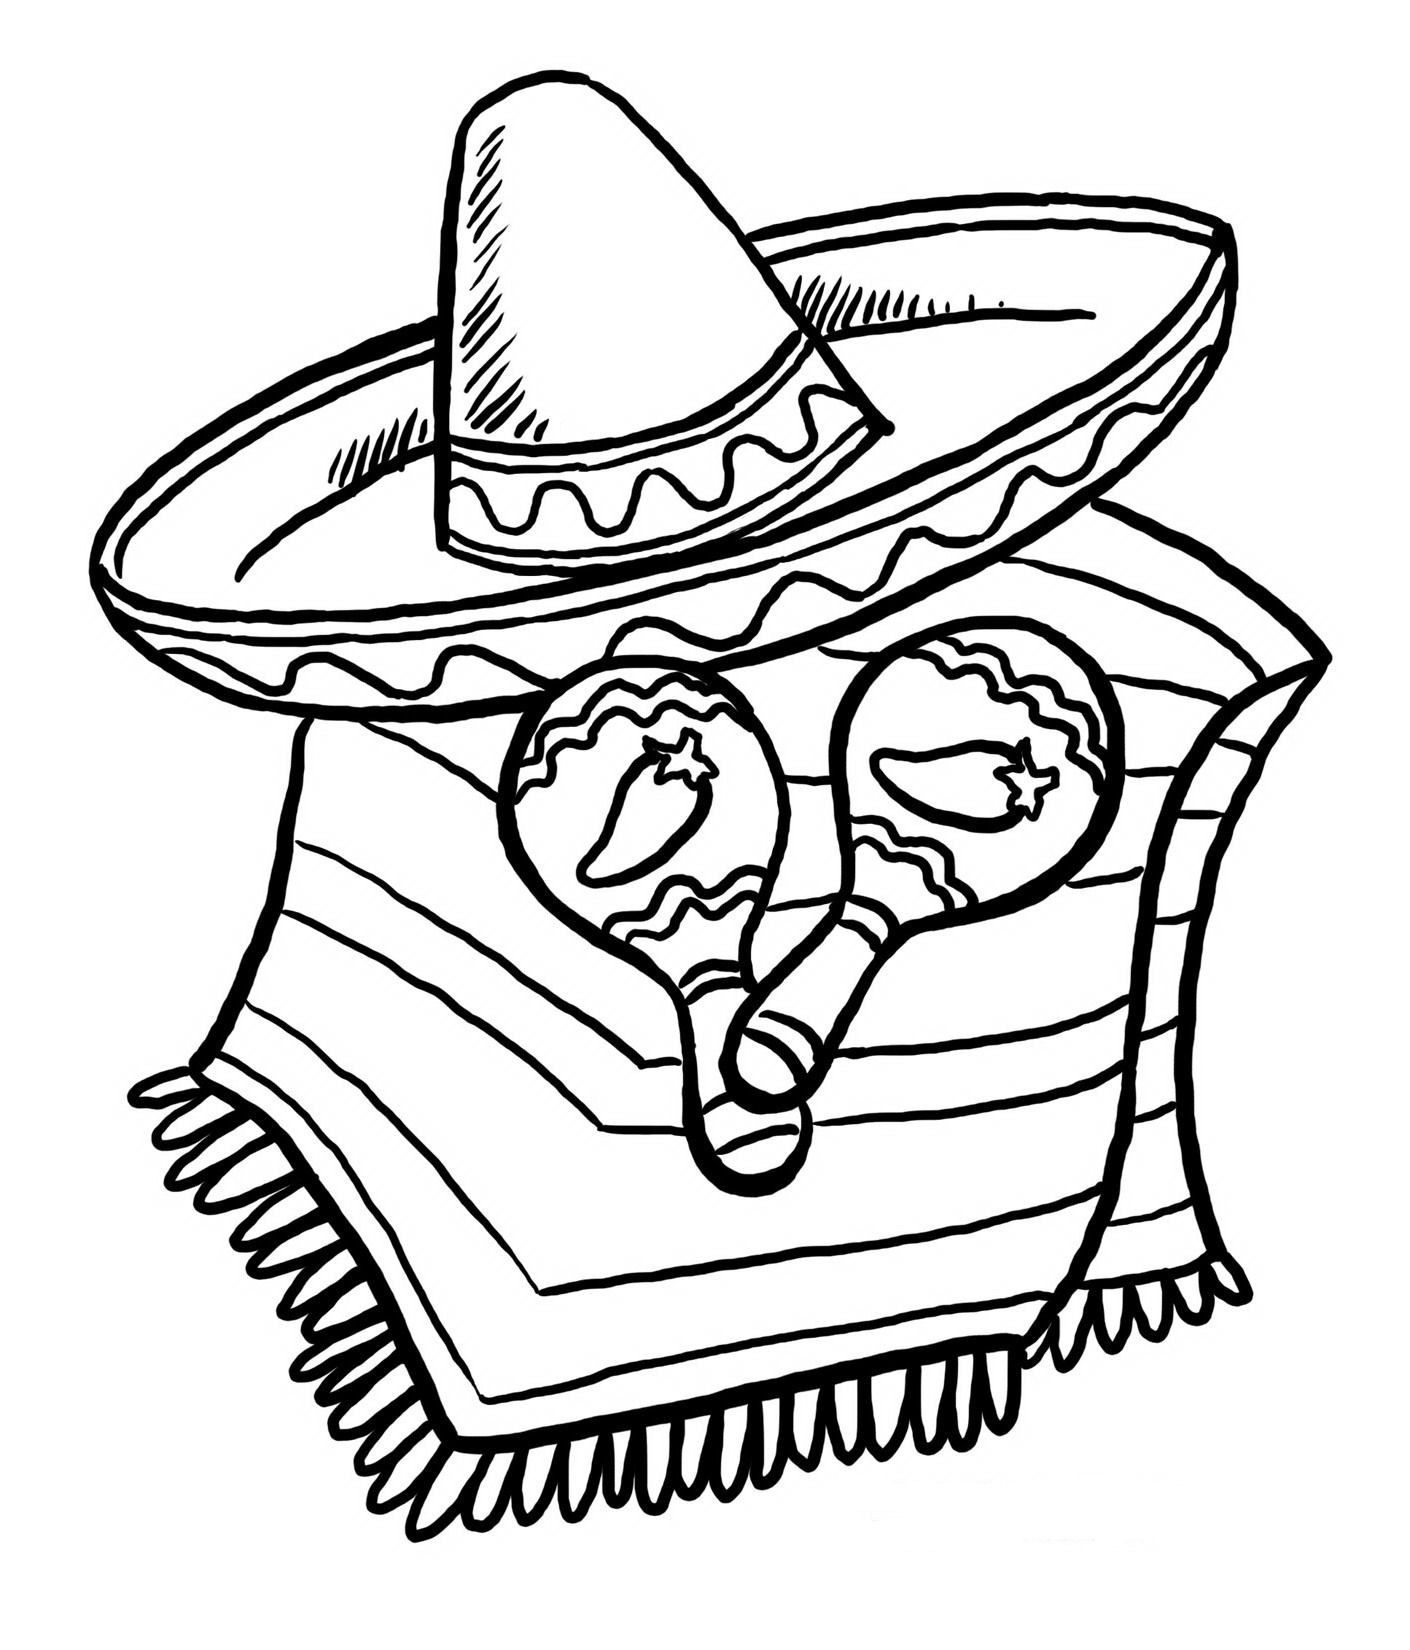 Transformers Da Colorare Unico Sombrero 3 Free Coloring Pages In Various Coloring Pages Of Tr Coloring Pages Flag Coloring Pages Skull Coloring Pages